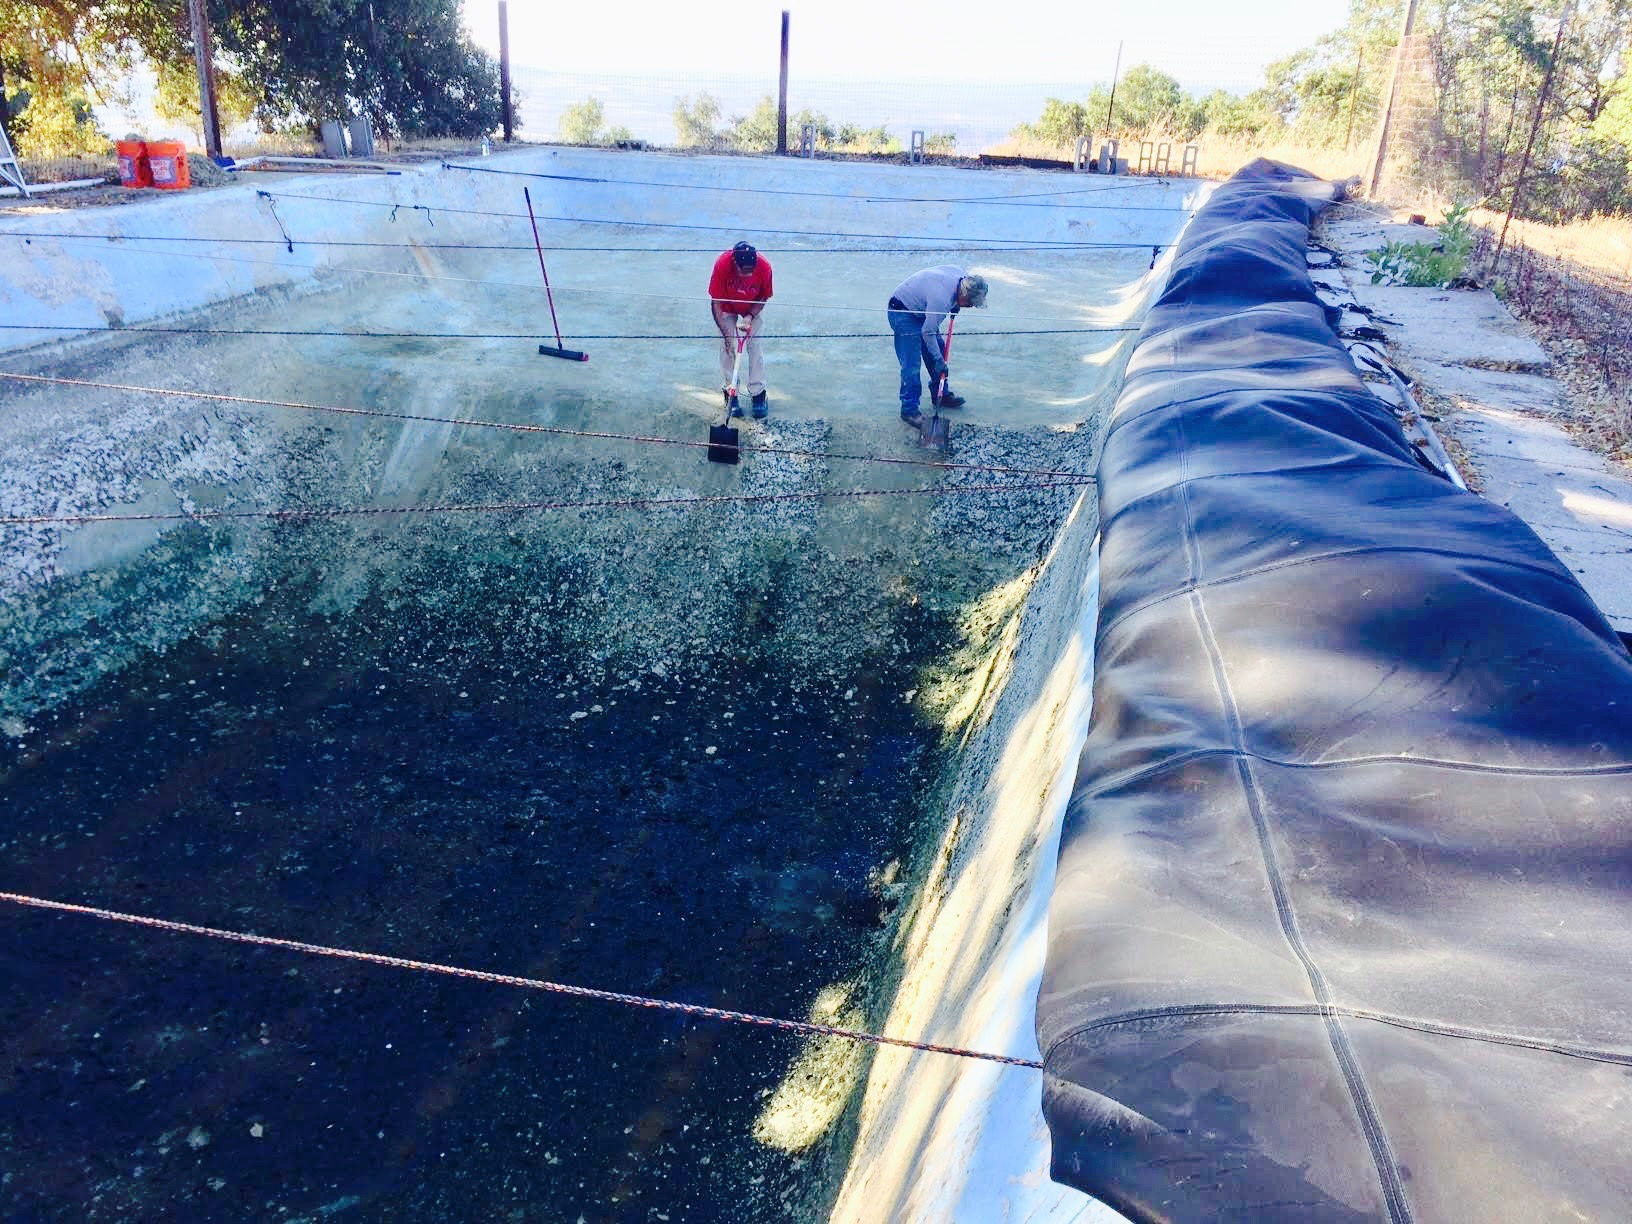 CLEANING THE SWIMMING POOL at Meher Mount of accumulated bio-matter. The pool acts as a reservoir for water pumped from the well. From here, the water goes through a treatment system before going to the Visitor Center/Caretaker Quarters. (Photo: Buzz Glasky, 2016)